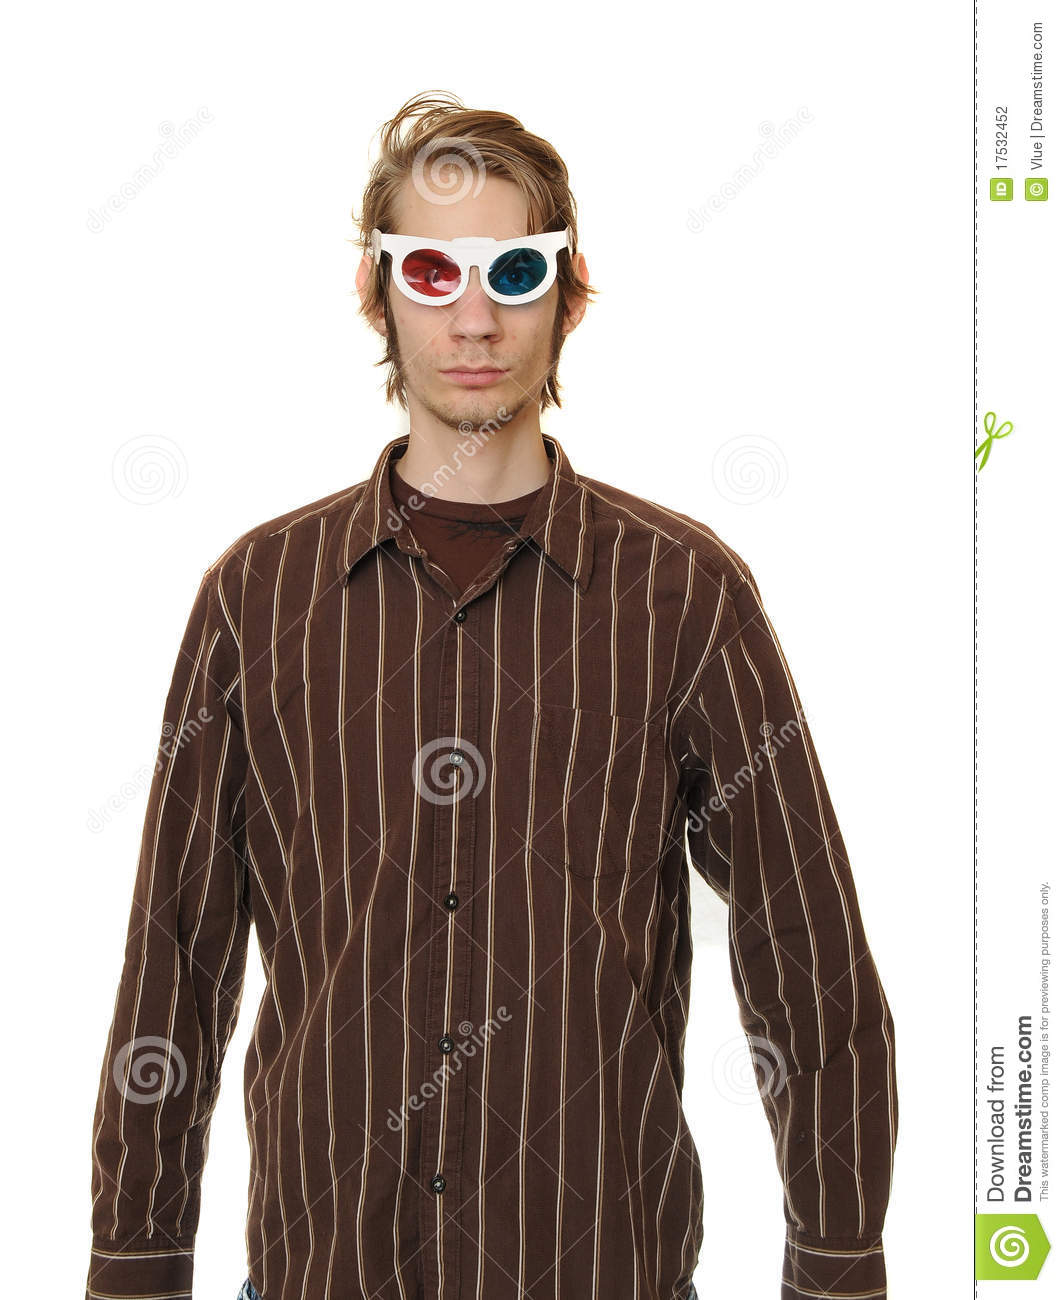 Man Wearing 3D Glasses Stock Photography - Image: 17532452